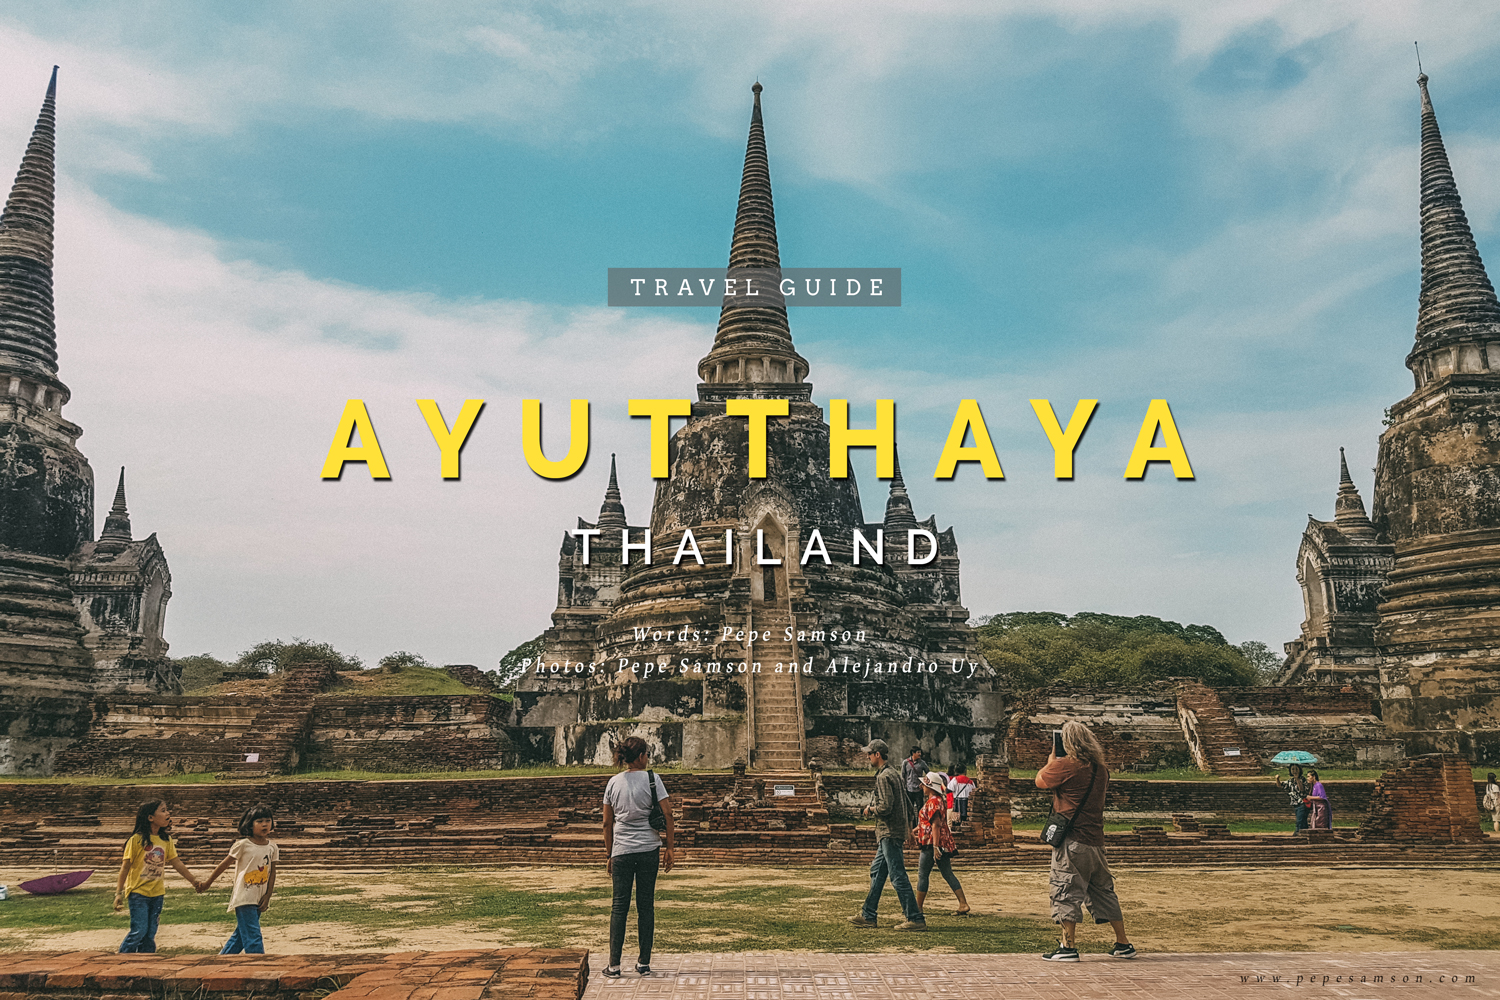 Travel Guide: Ayutthaya, Thailand's Ancient Capital City